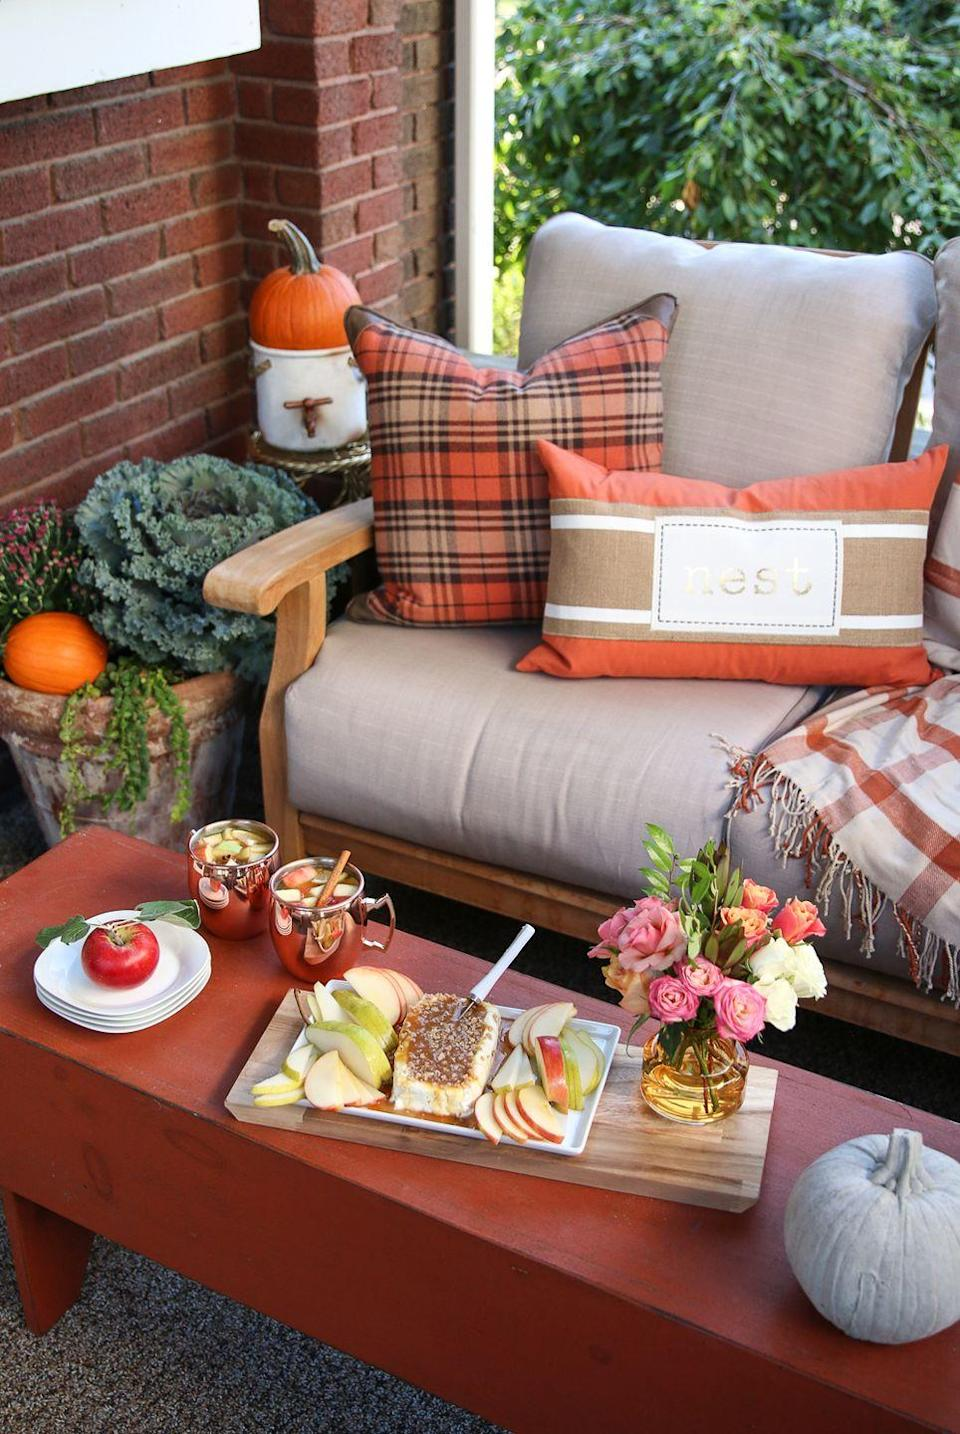 """<p><a href=""""https://www.elledecor.com/life-culture/entertaining/g10341591/garden-wedding-venues/"""" rel=""""nofollow noopener"""" target=""""_blank"""" data-ylk=""""slk:Outdoor entertaining"""" class=""""link rapid-noclick-resp"""">Outdoor entertaining</a> spaces deserve a fall touch too! Blogger Michael Wurm Jr. of <a href=""""http://inspiredbycharm.com/2016/09/fall-entertaining-around-my-house-tour.html"""" rel=""""nofollow noopener"""" target=""""_blank"""" data-ylk=""""slk:Inspired by Charm"""" class=""""link rapid-noclick-resp"""">Inspired by Charm</a> made his porch the perfect autumnal entertaining area by bringing the indoors out, with orange-and-brown throw pillows and blankets, a rust-colored coffee table, and some apple hors d'oeuvres and drinks.</p>"""